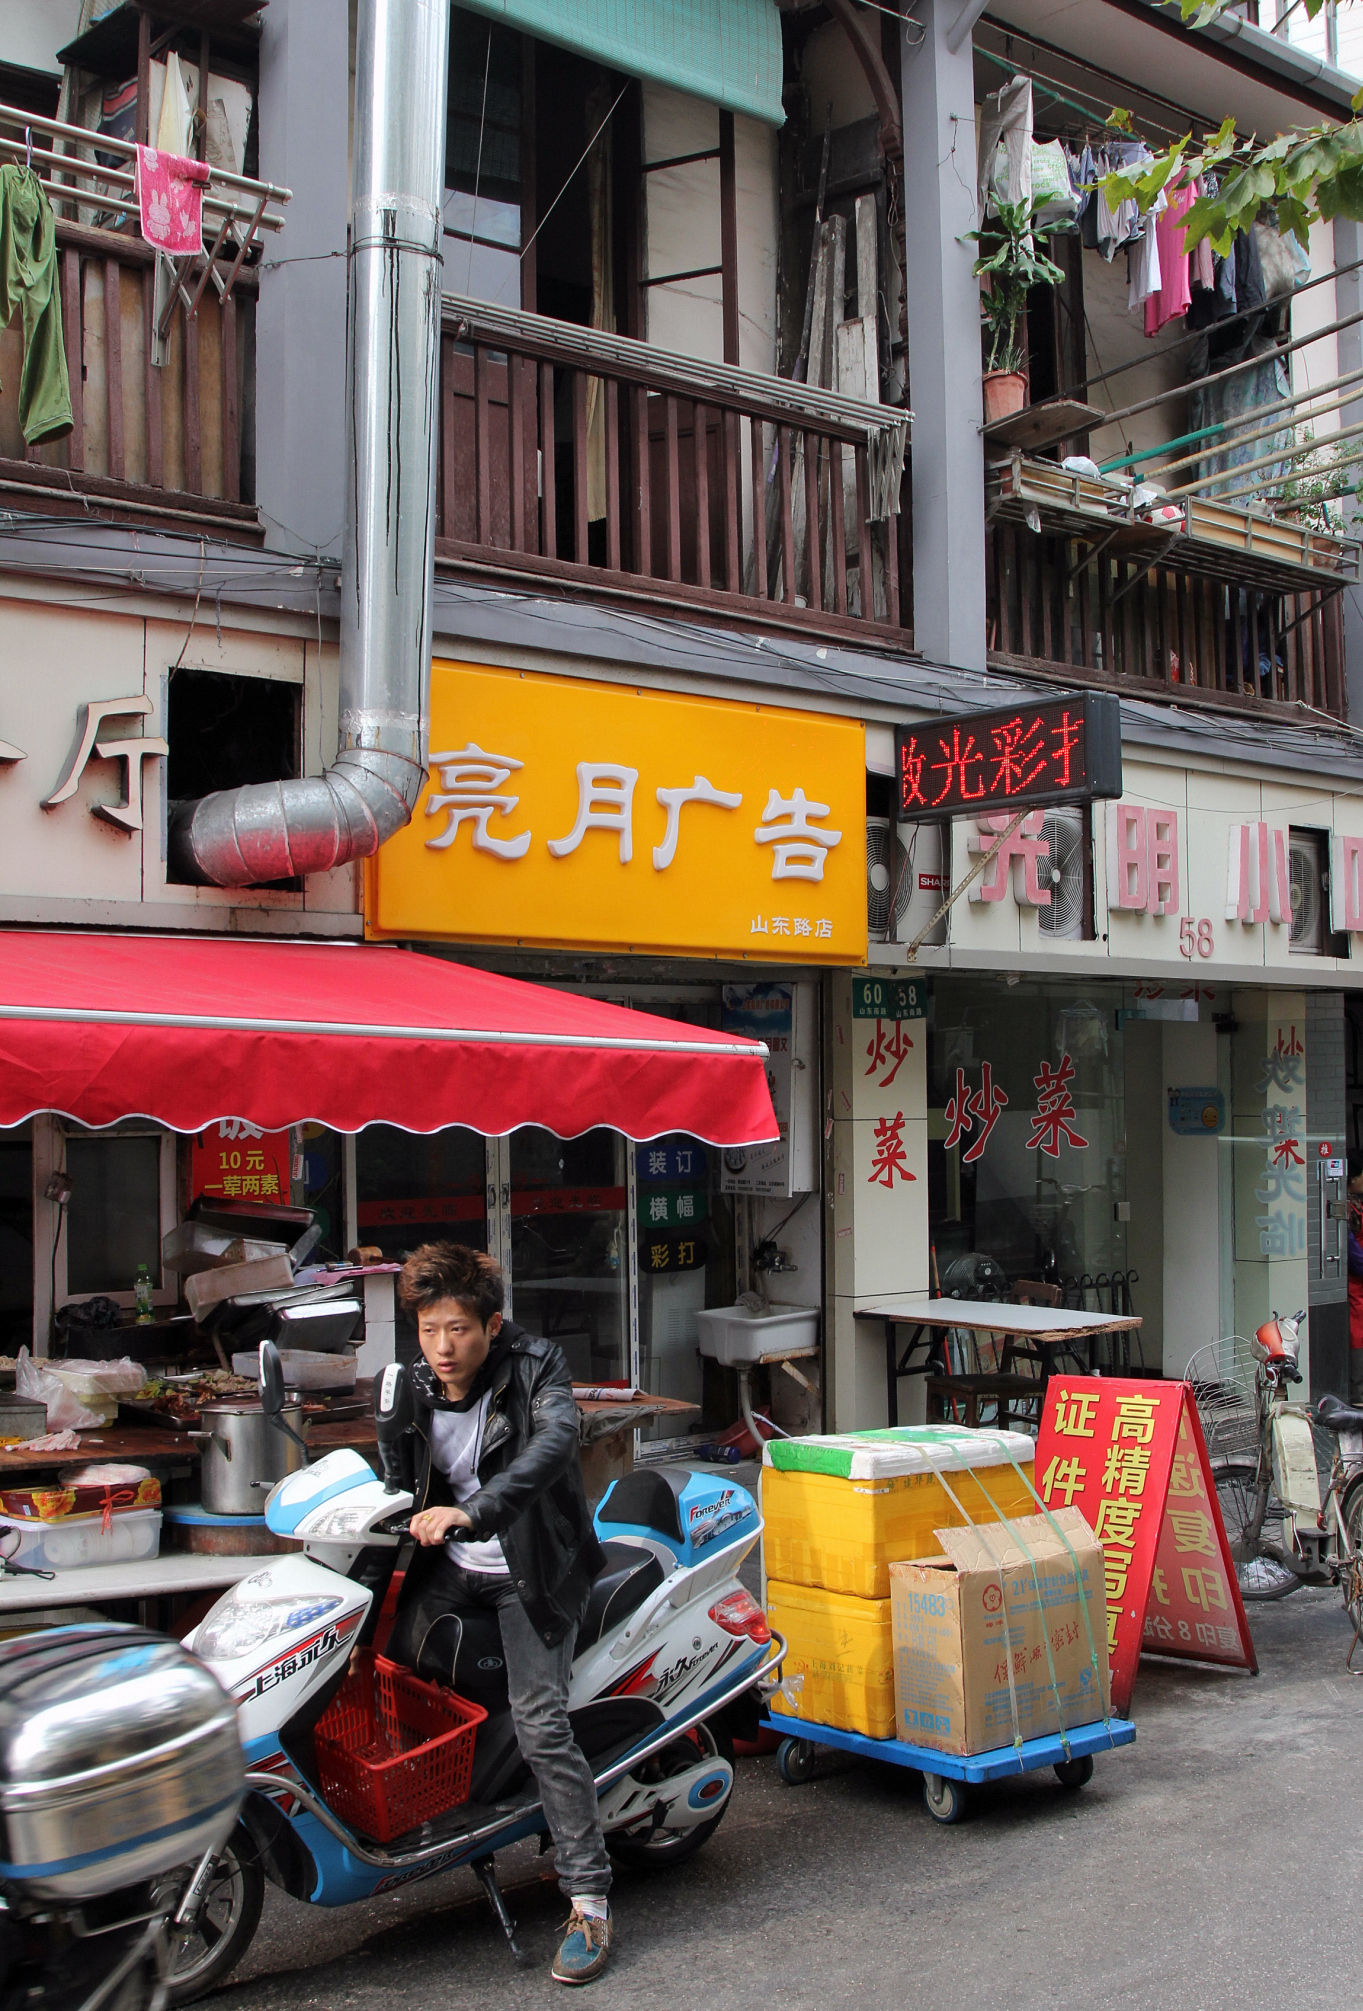 Qiu grew up in the house above the yellow sign here in the heart of Shanghai.